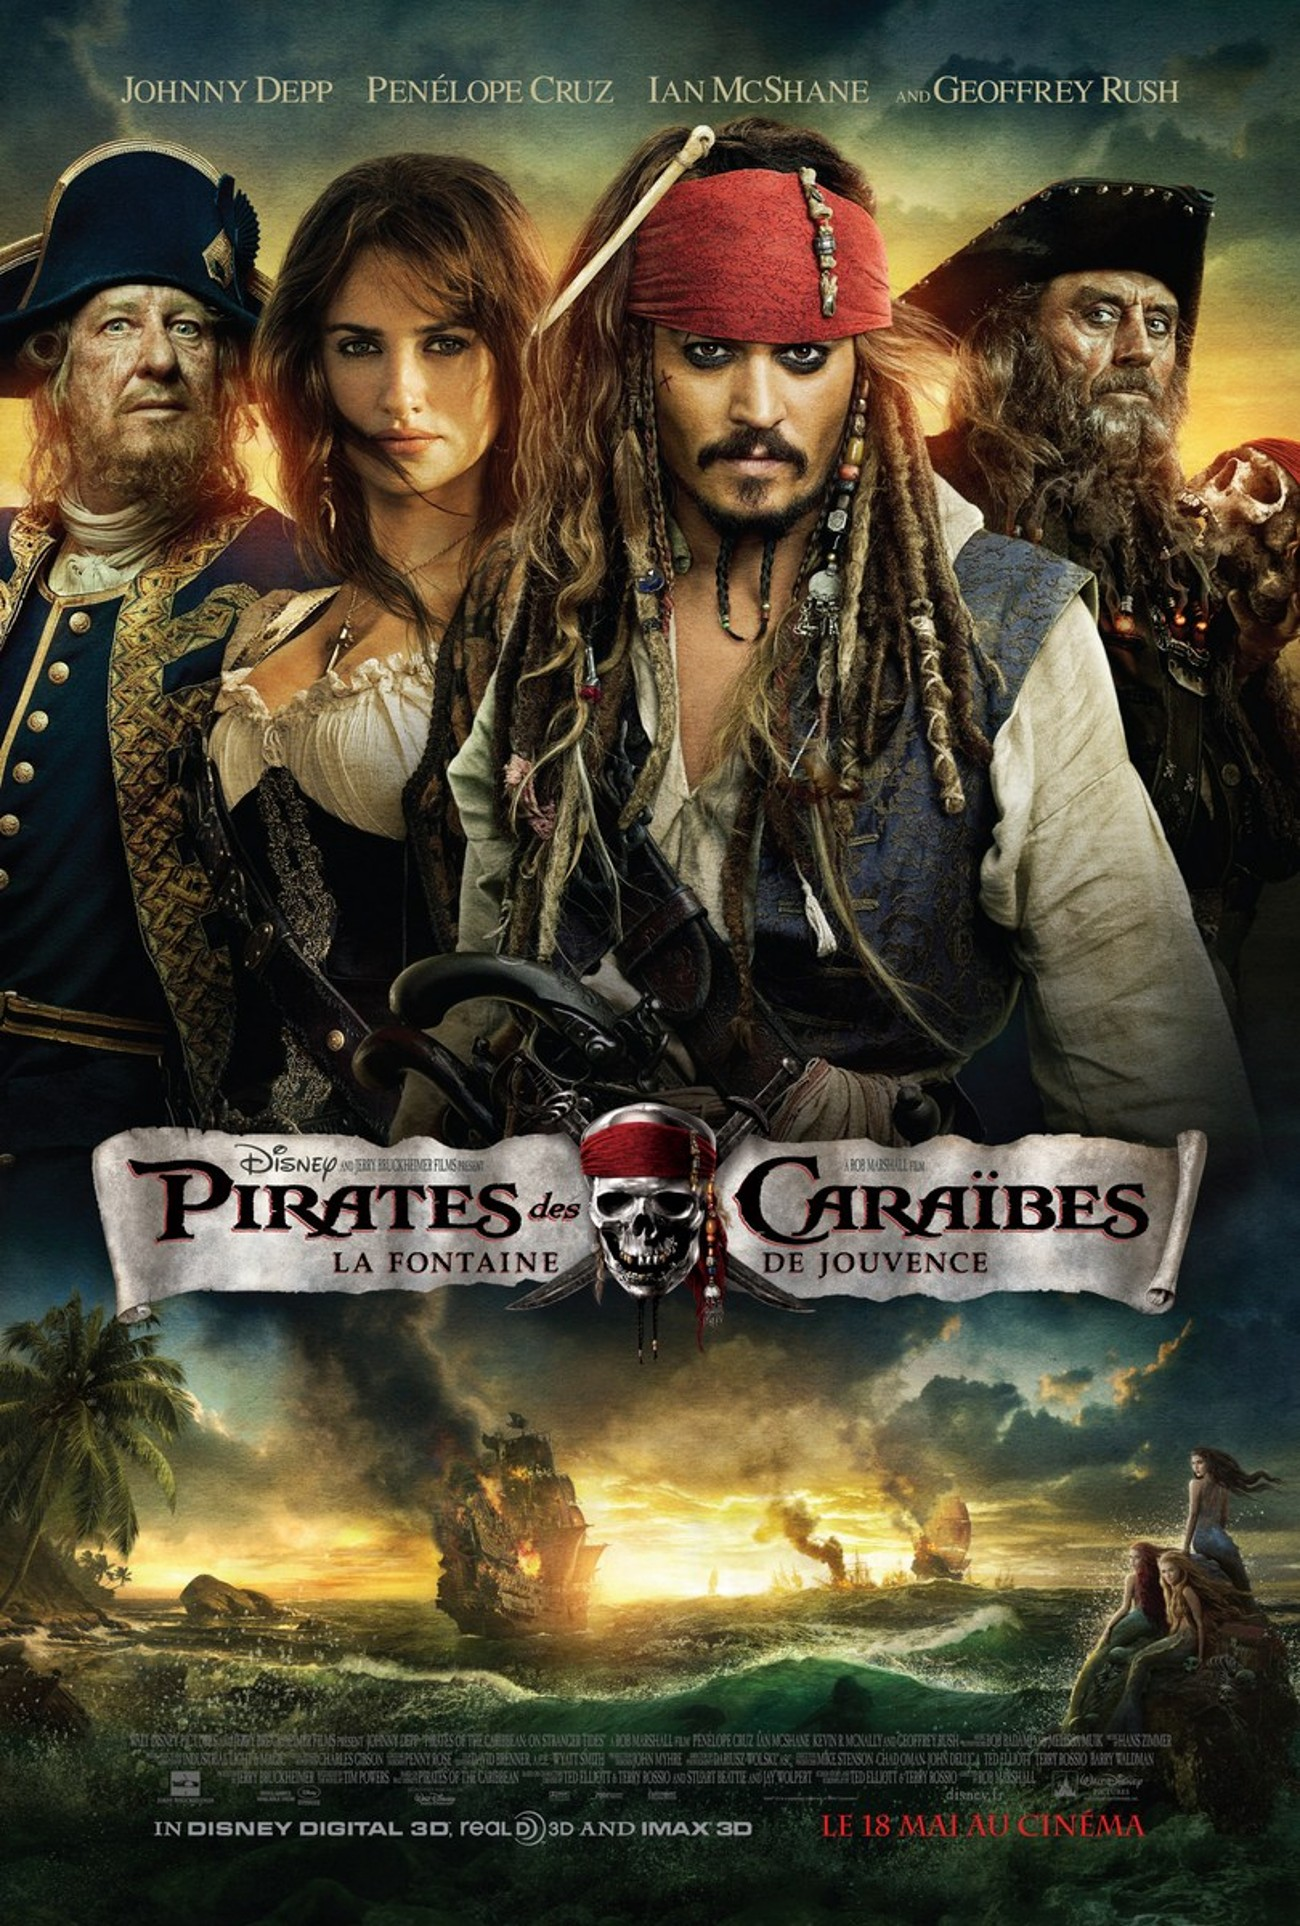 disney pictures pirates caraibes stranger sides fontaine jouvence caribbean affiche poster